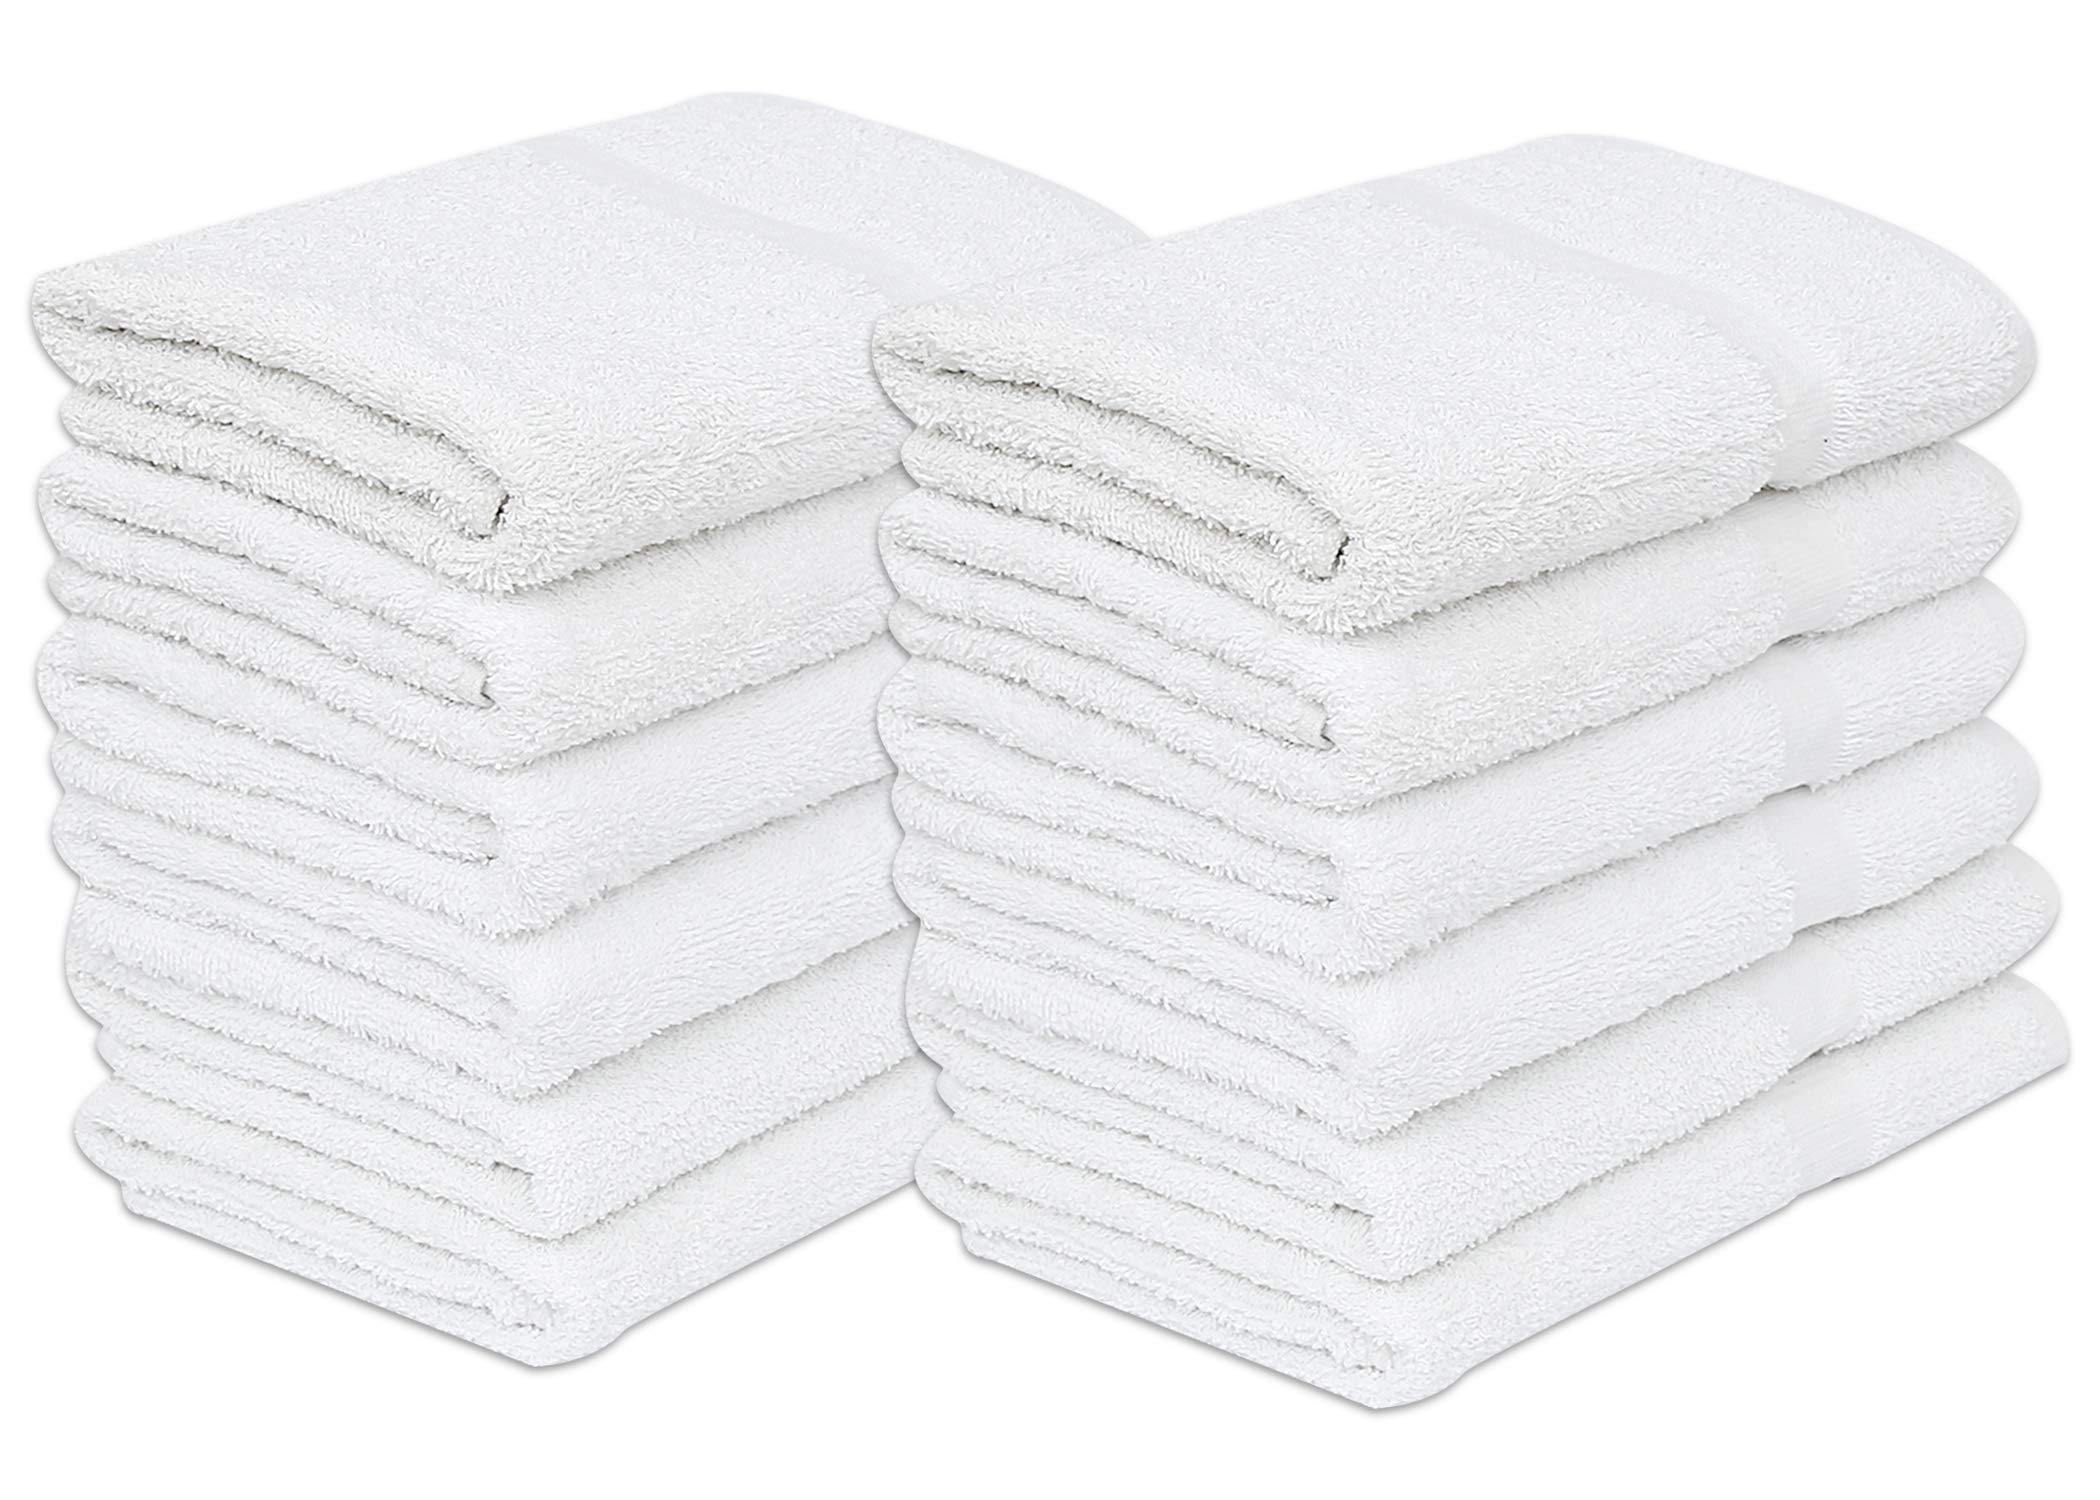 GOLD TEXTILES 12 Pack White Economy Bath Towel (24''x 48'') 100% Cotton for Maximum Softness Easy Care-Home,spa,Resort,Hotels/Motels,Gym use (12)